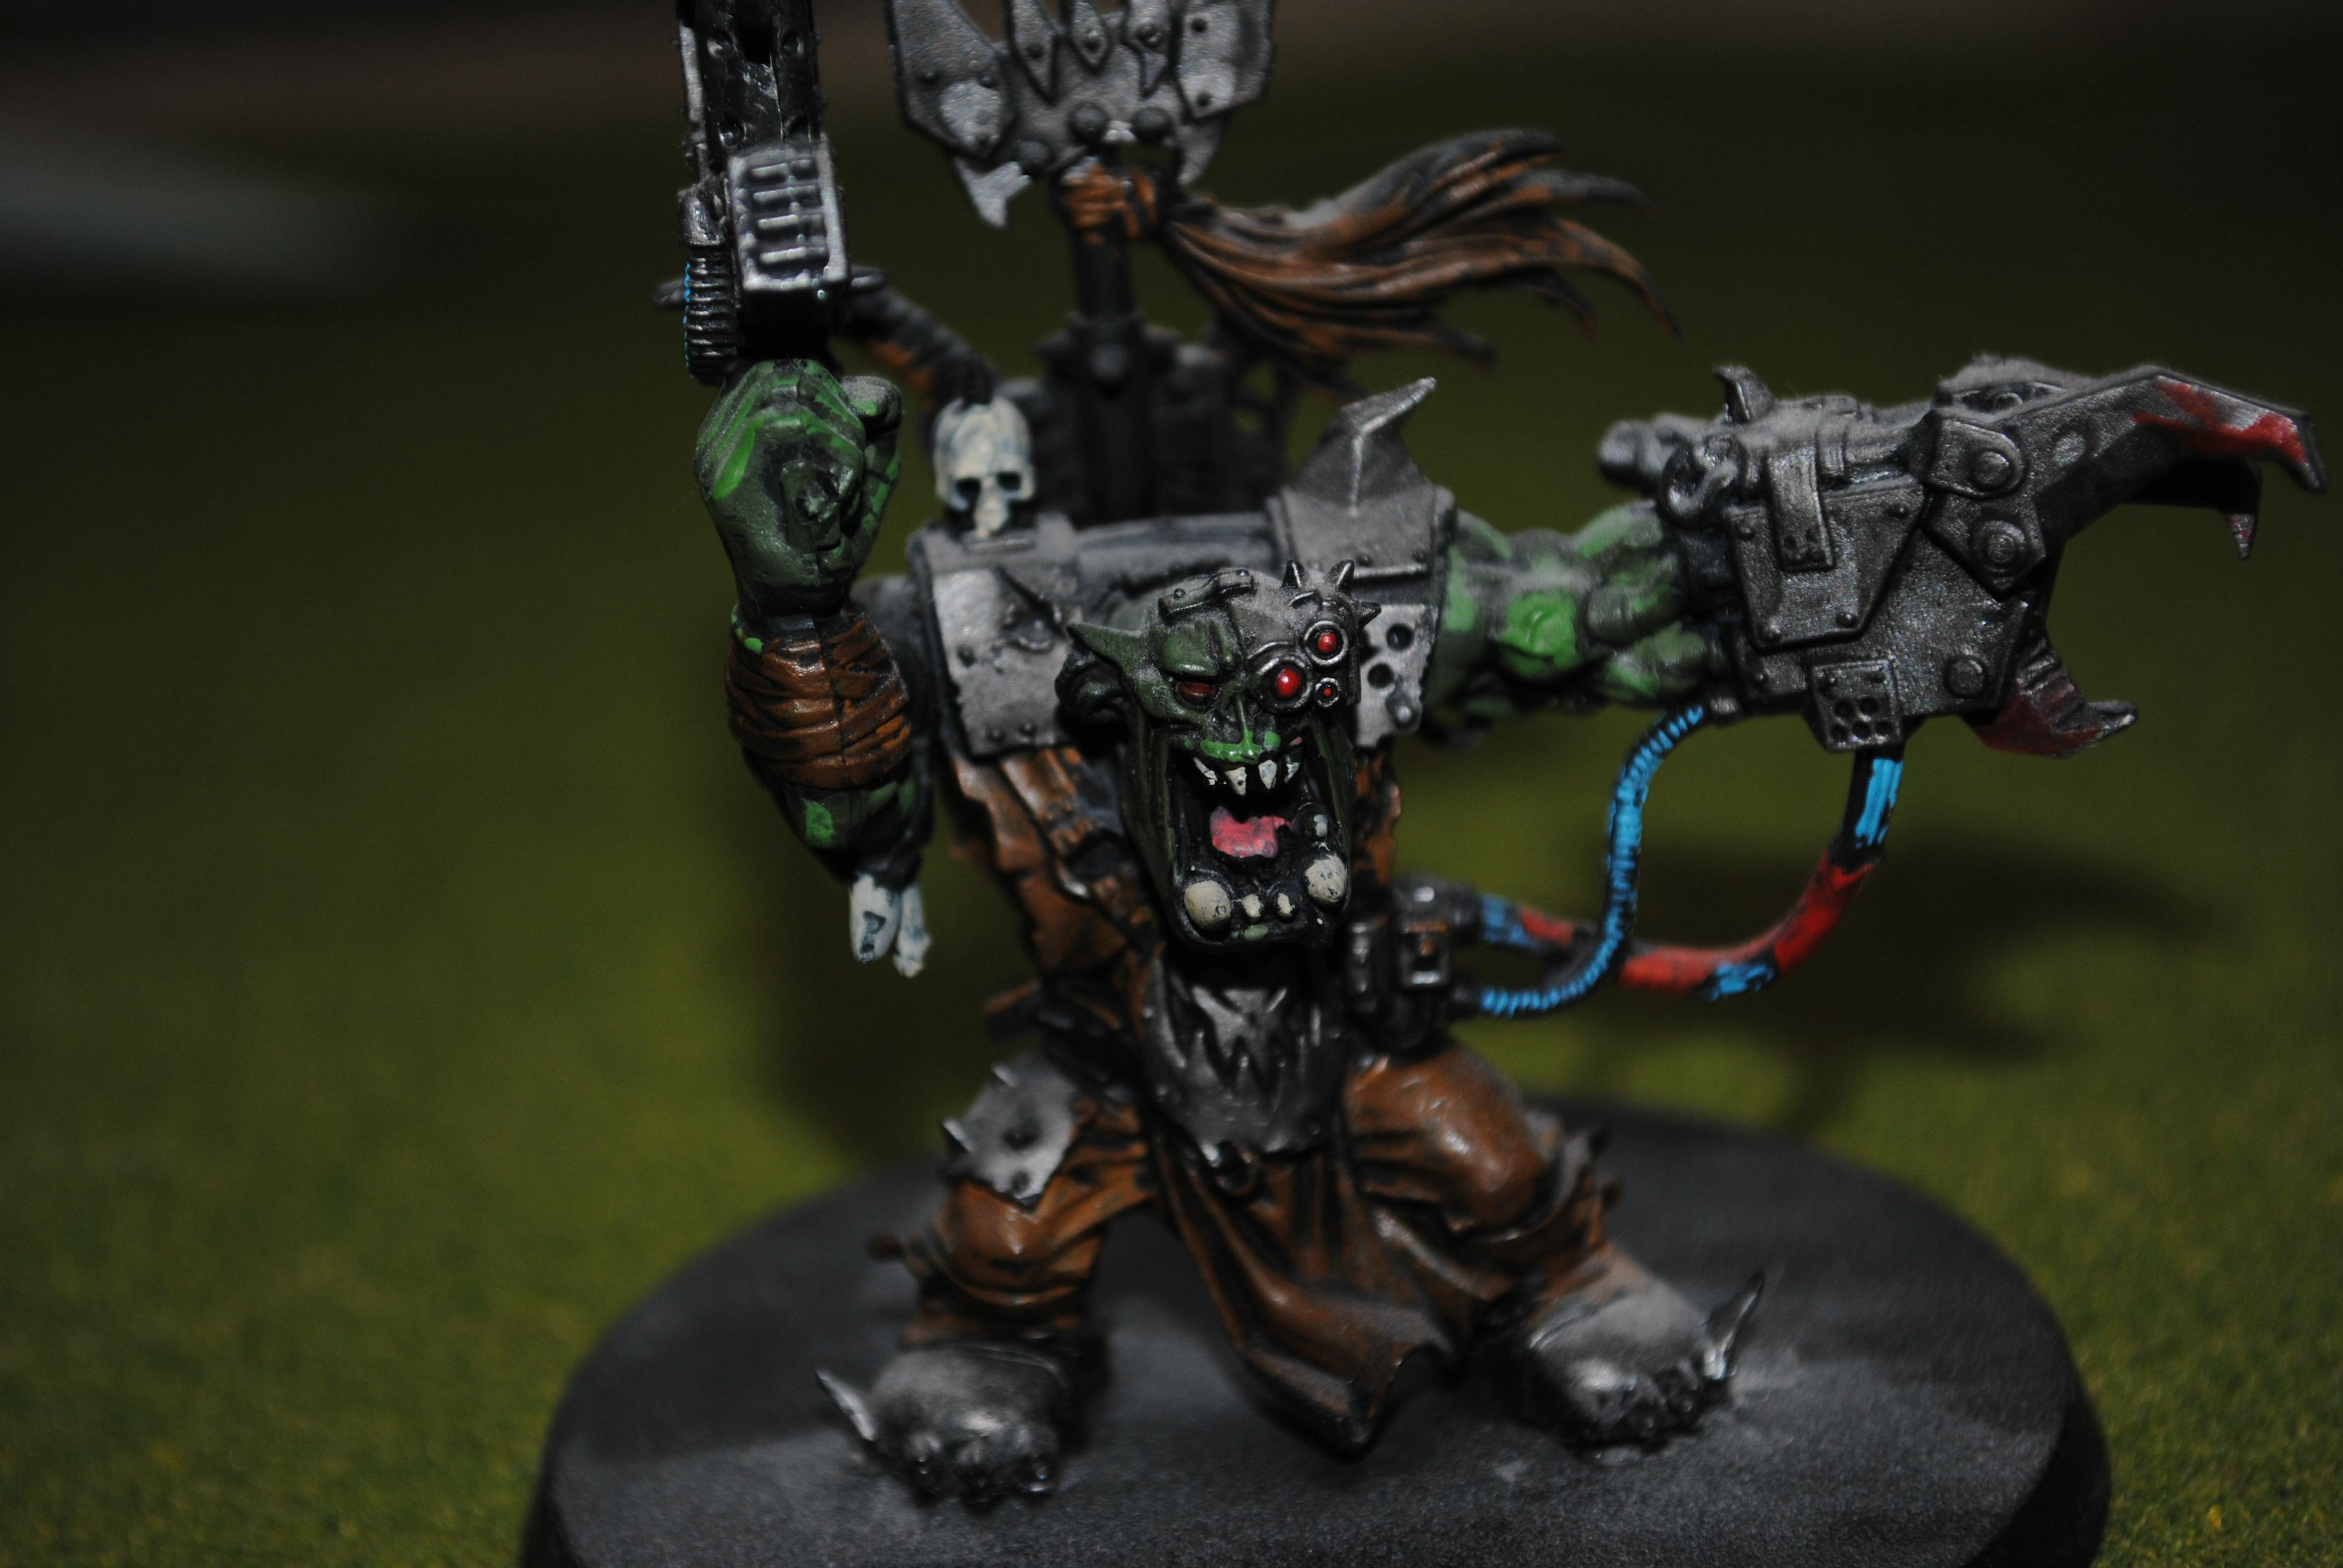 The warboss that needs repainting, and a name